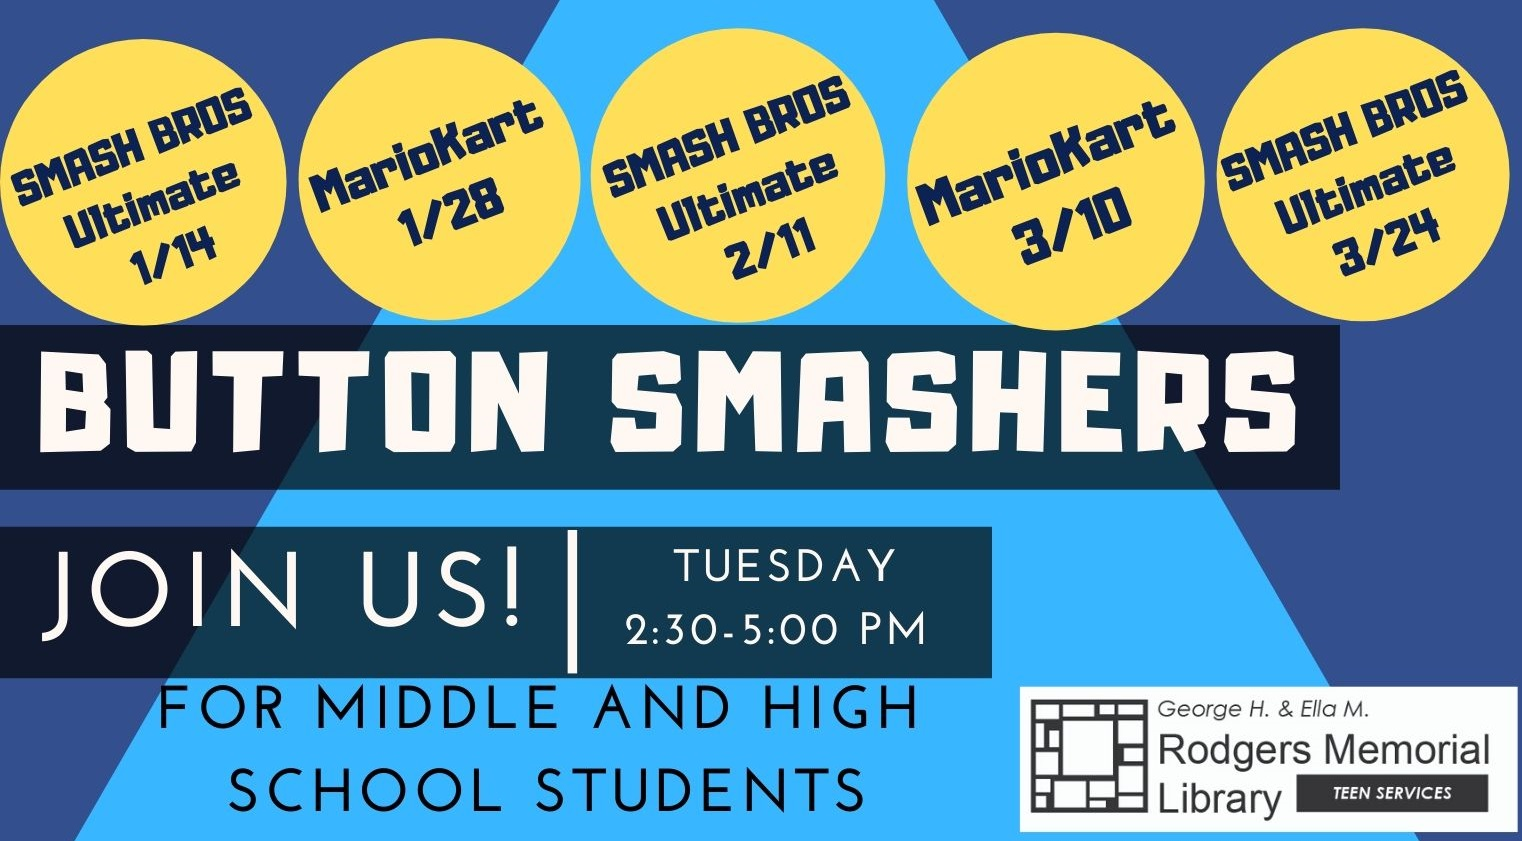 Button Smashers: MarioKart Tournament